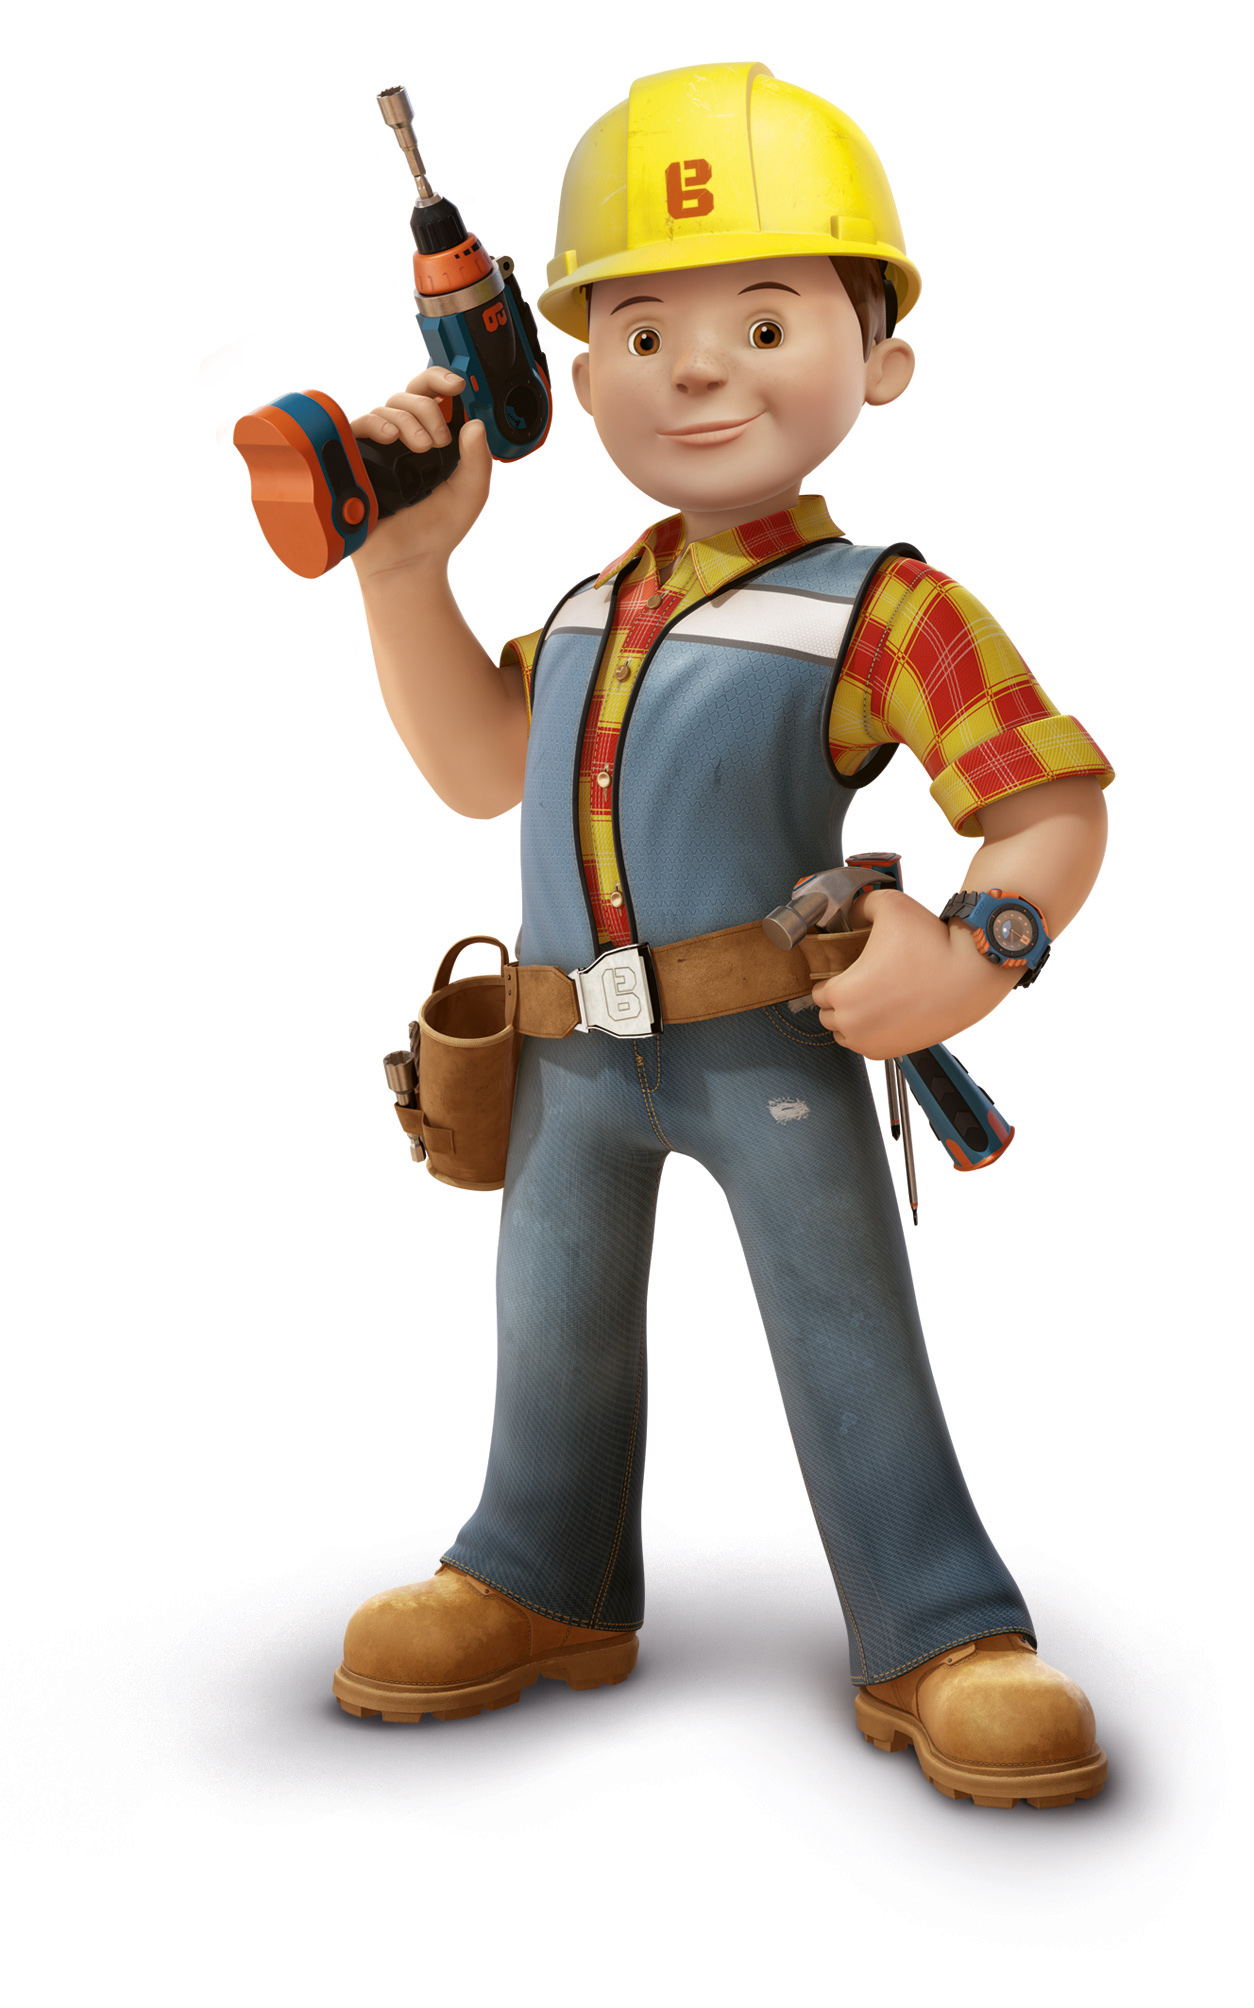 The Characters Of The Cups: BOB THE BUILDER™ IS BACK WITH BRAND NEW CONTENT BRINGING